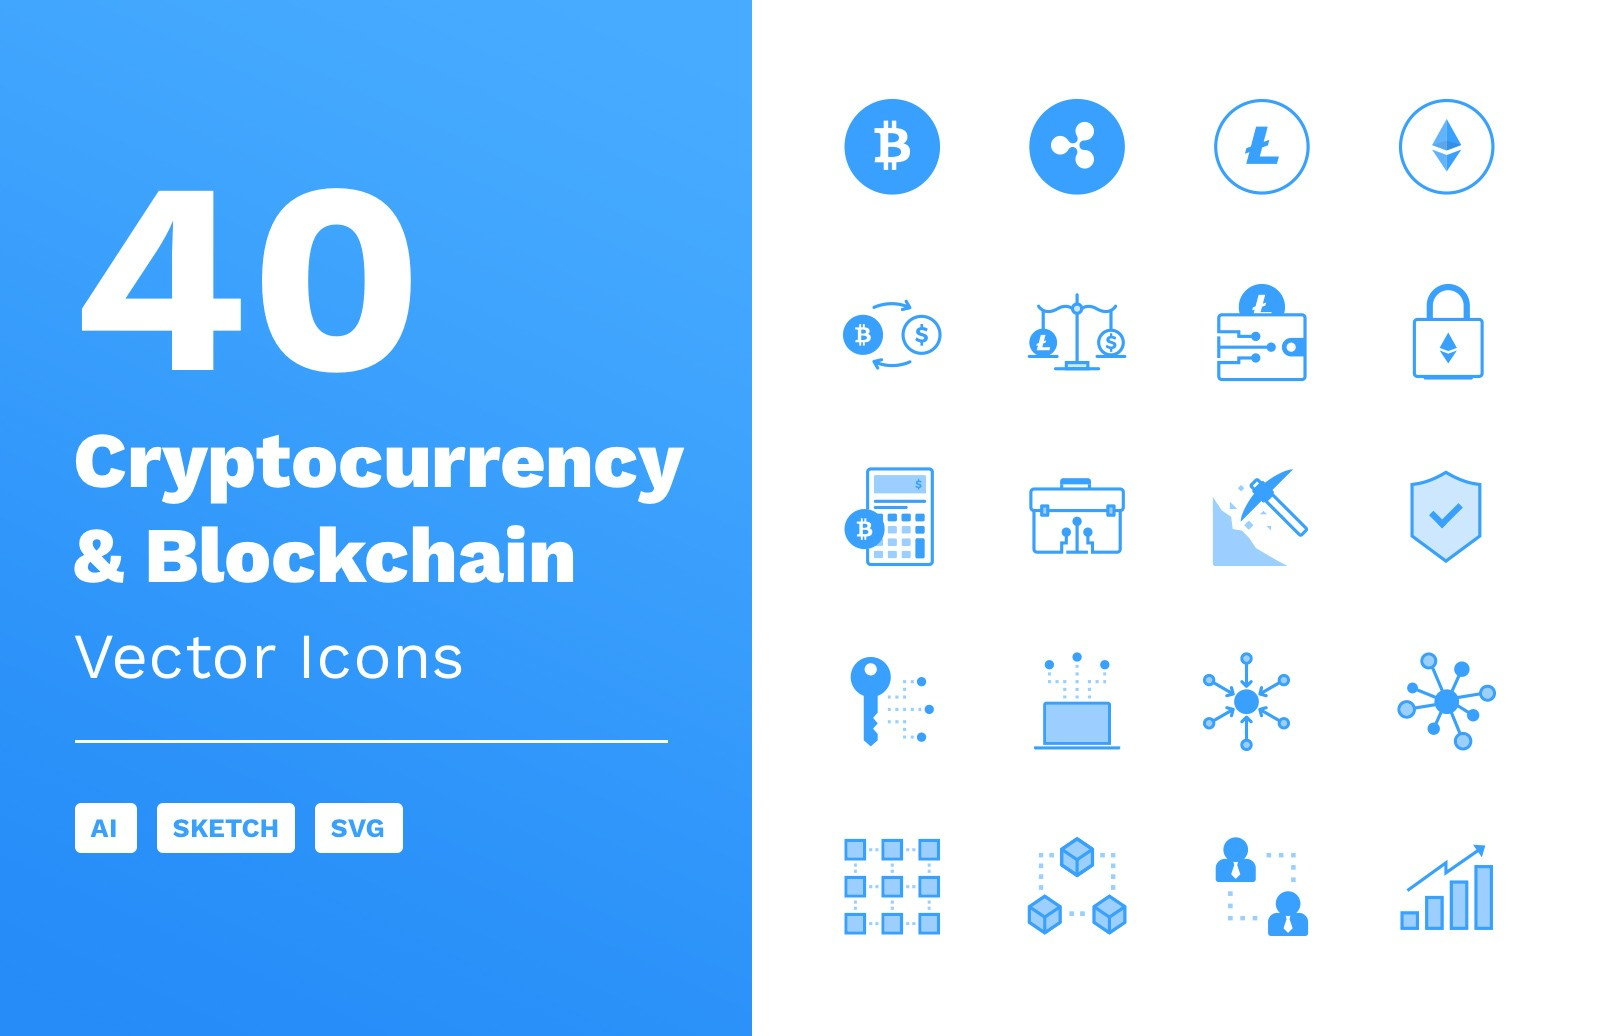 Cryptocurrency & Blockchain Vector Icons